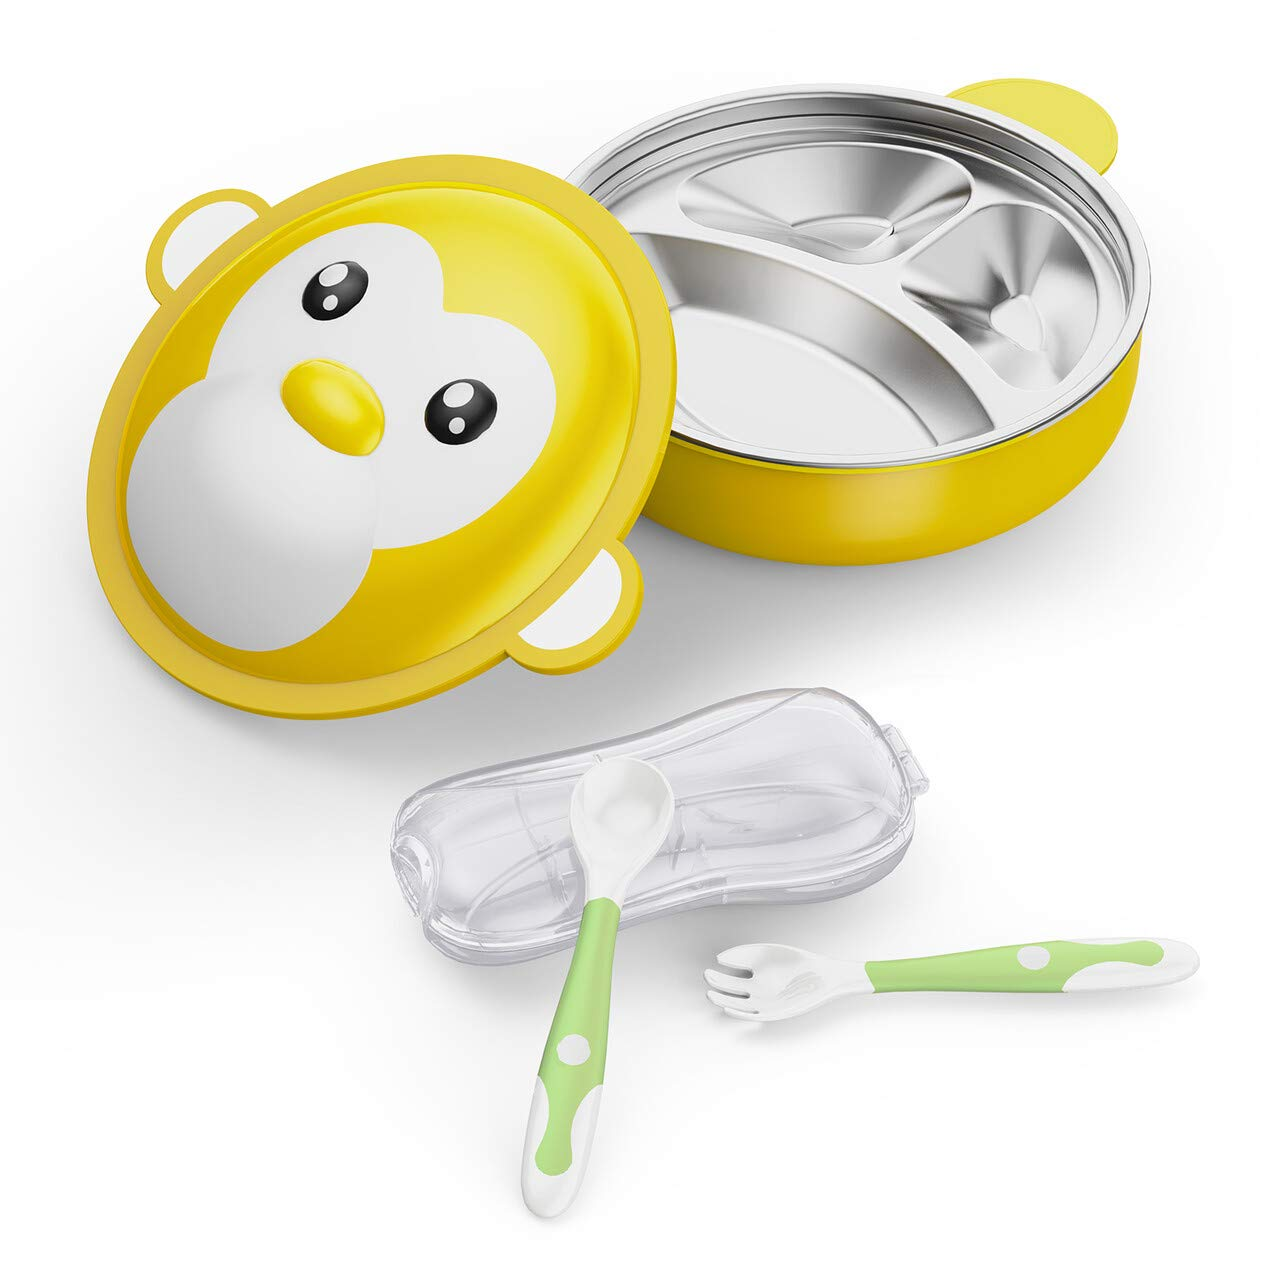 BabyKing Cartoon Monkey Baby Feeding Set, Baby Warming Bowl & Bendable Spoons Forks, Healthy Children Tableware Set for Baby Preschoolers & Little Pupils